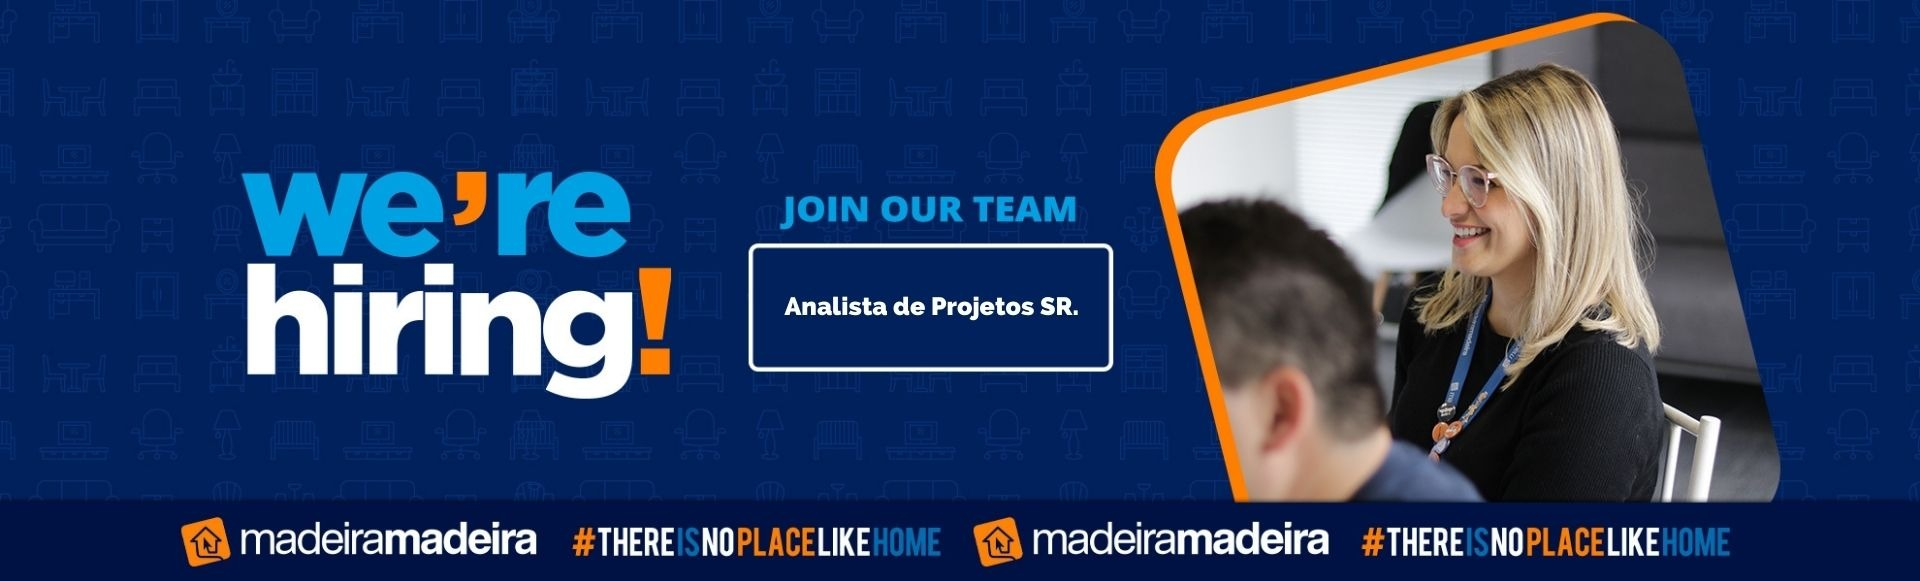 Analista de Projetos SR (Partner Tools)